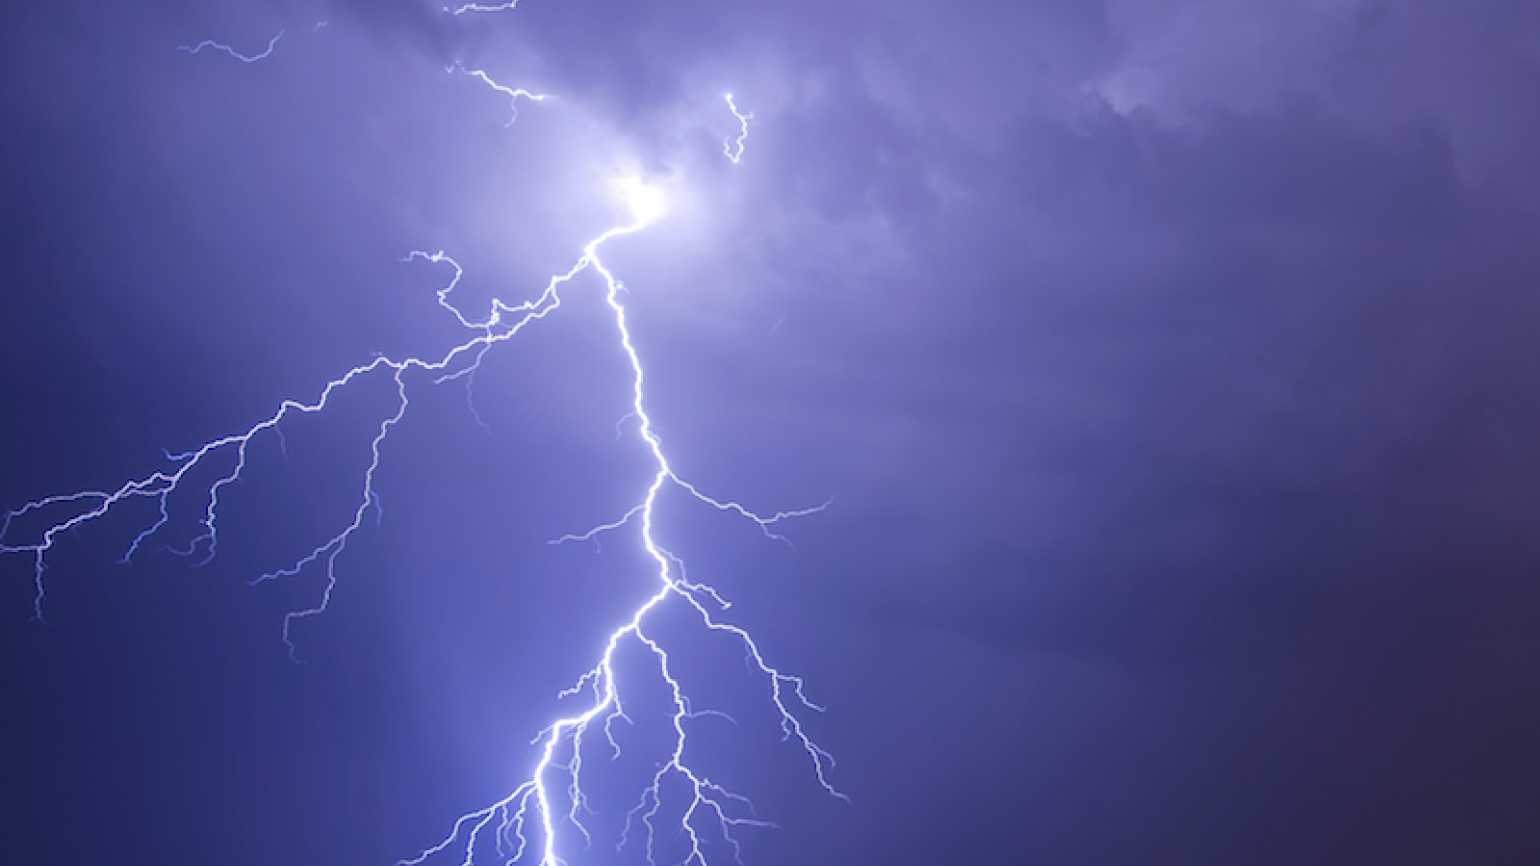 Photo of stormy night by Sytilin for Thinkstock